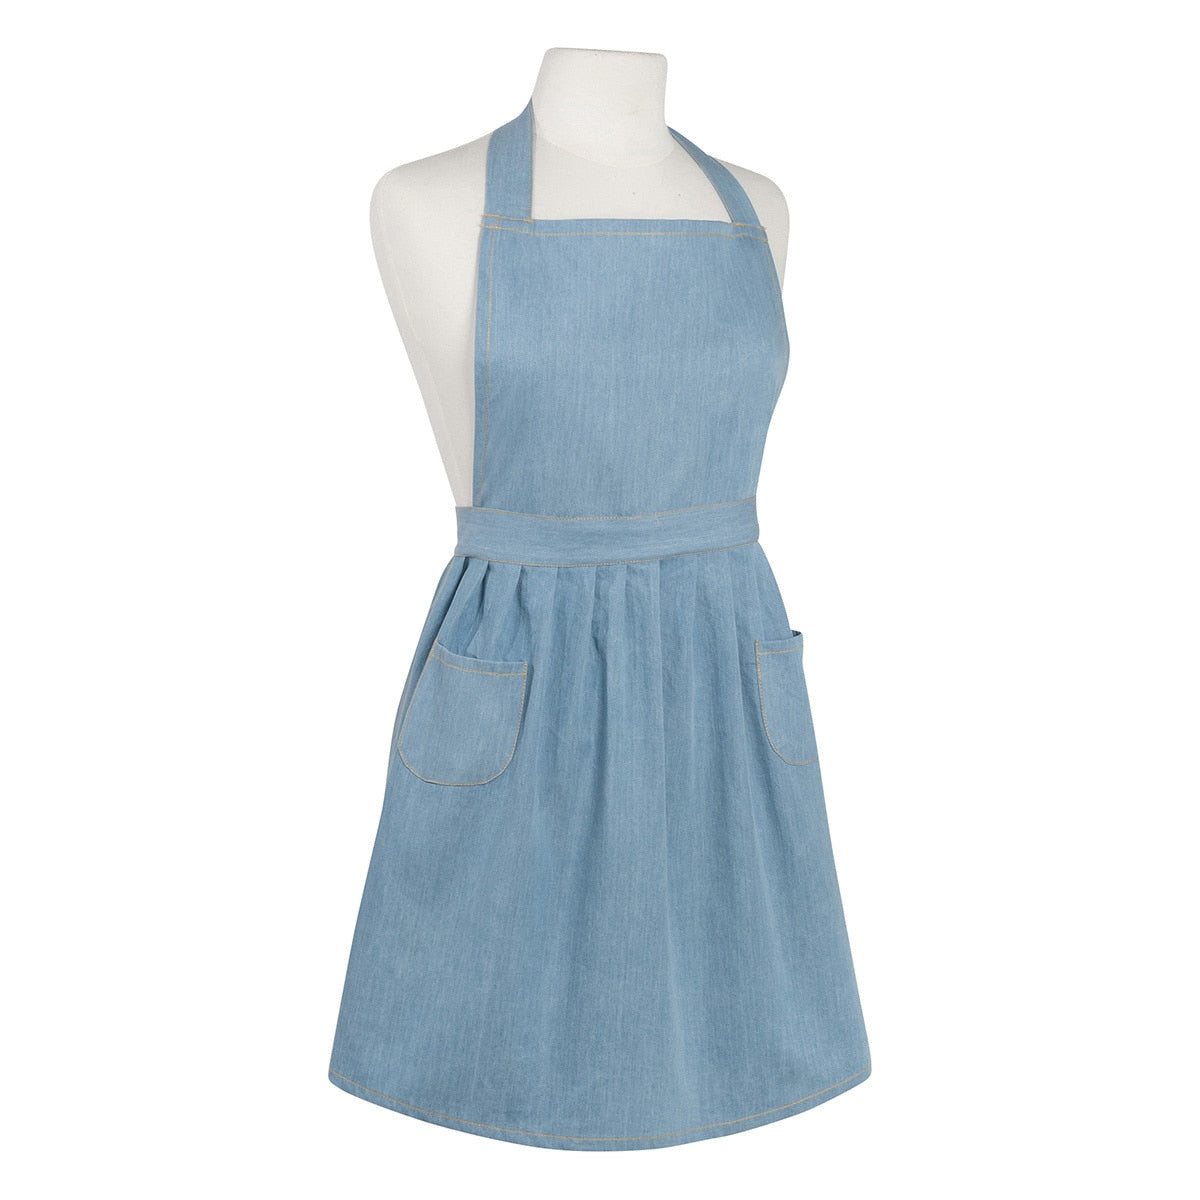 Now Designs - Classic Apron, Light Denim